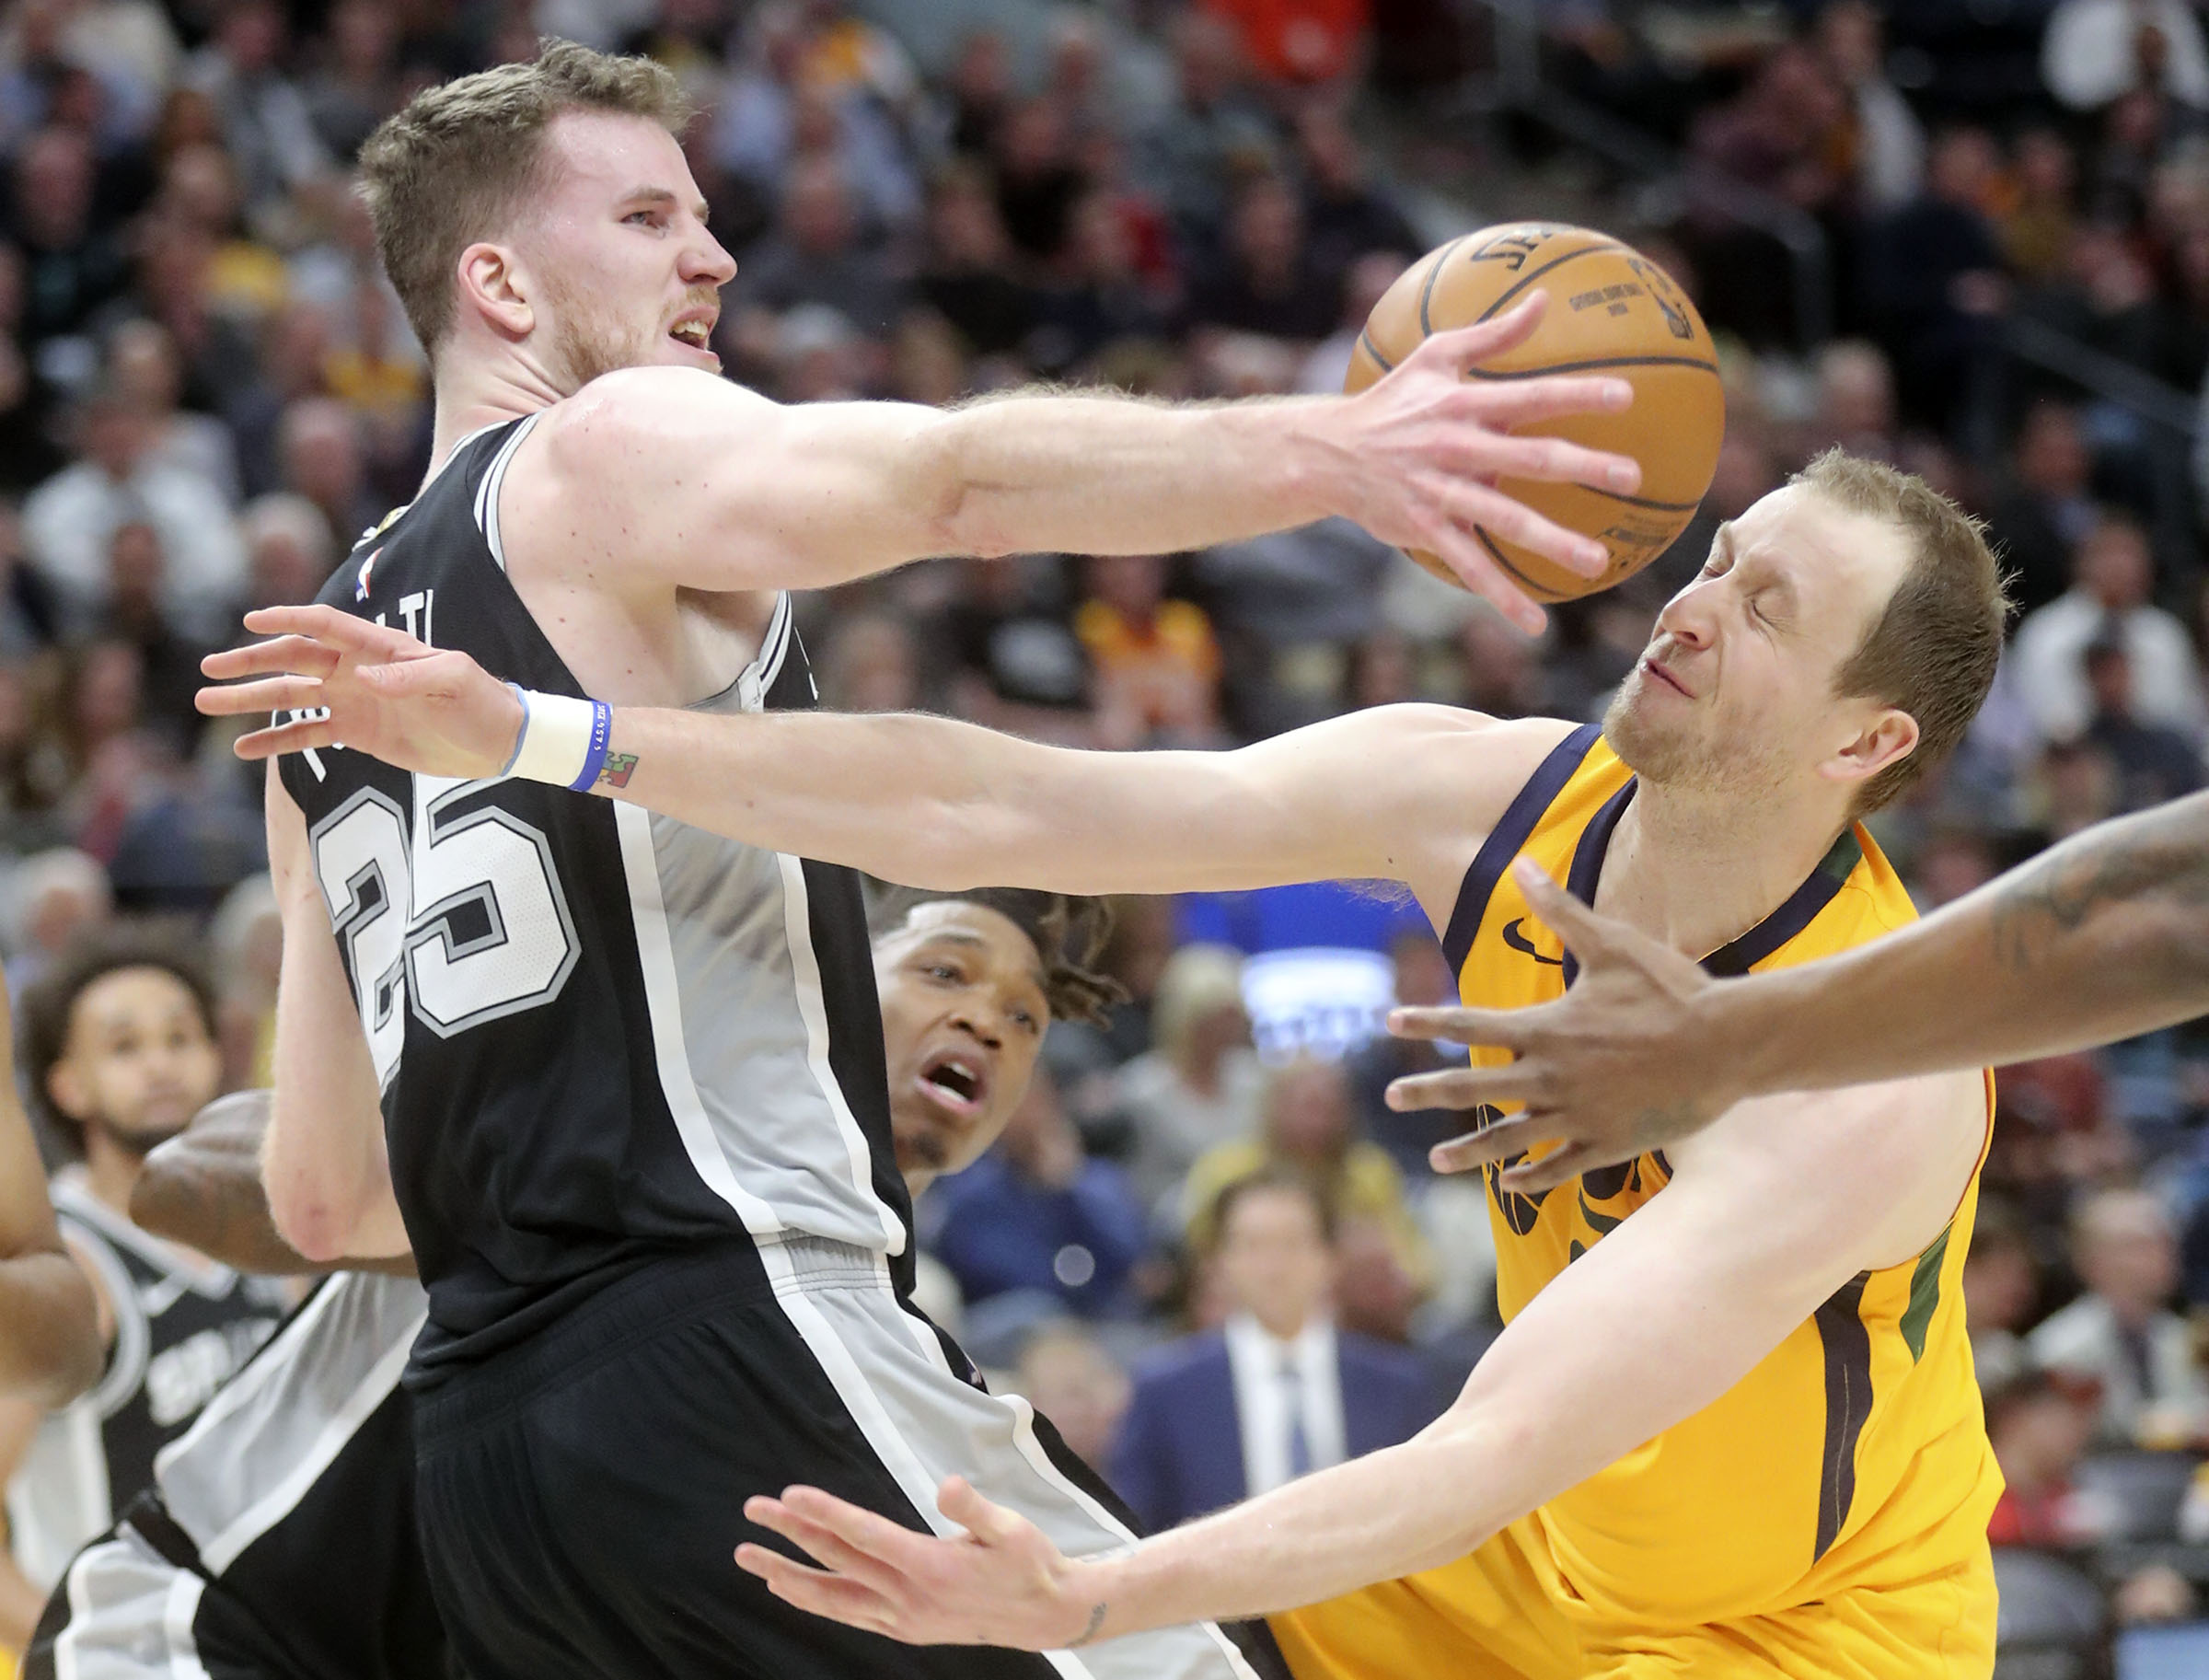 Utah Jazz guard Joe Ingles (2) loses the ball as San Antonio Spurs center Jakob Poeltl (25) reaches for it during an NBA game at Vivint Arena in Salt Lake City on Friday, Feb. 21, 2020.The Jazz lost 104-113.